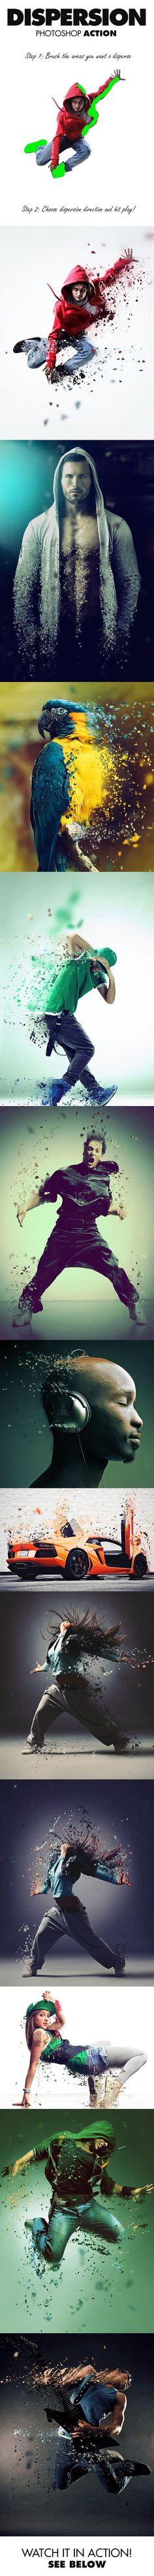 Dispersion Photoshop Action - Photo Effects Actions...the video tutorial is at the end.